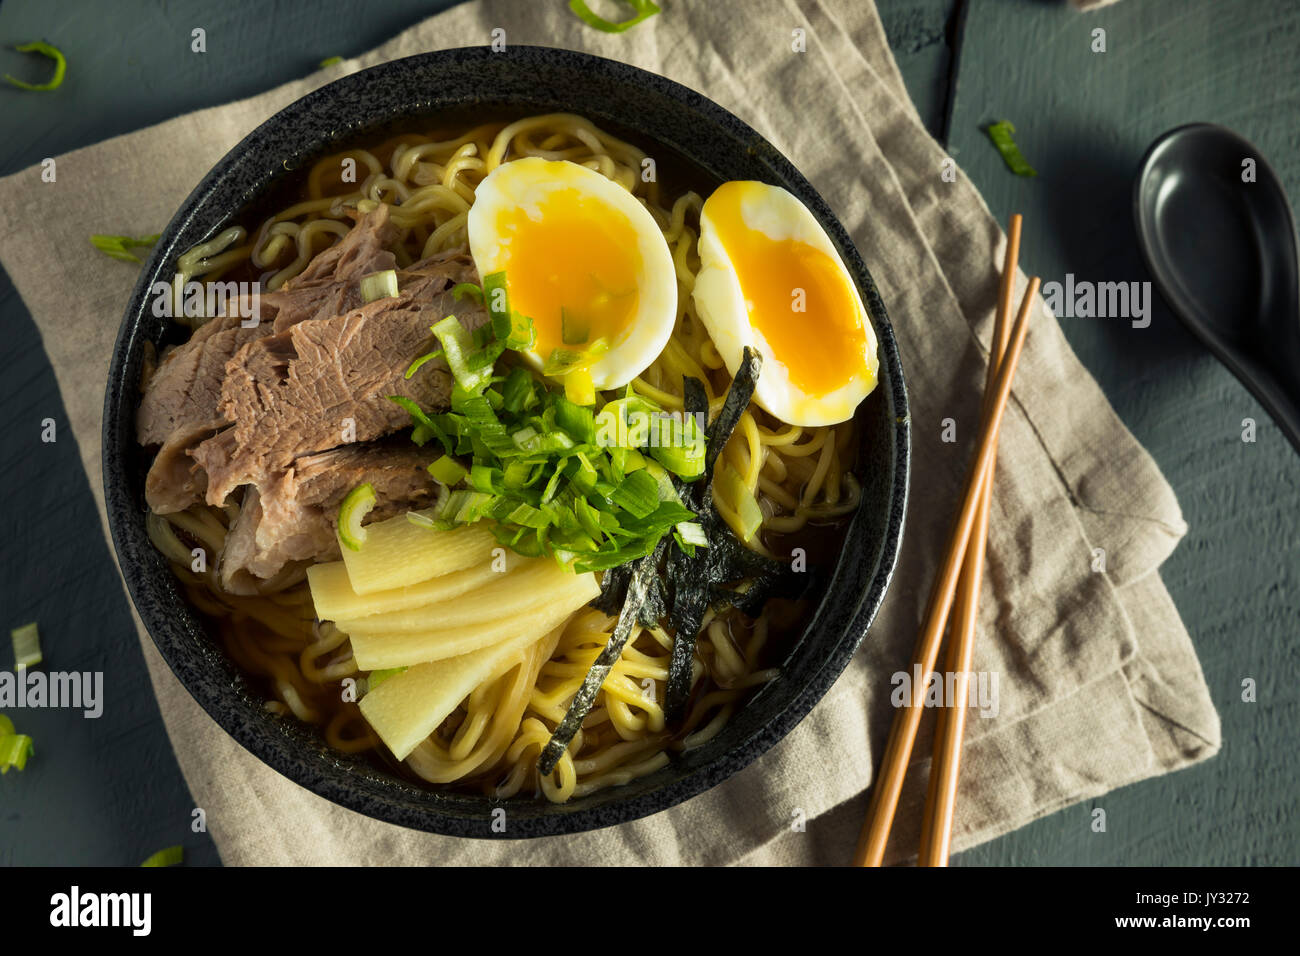 Homemade Japanese Pork Ramen Noodles with Egg and Seaweed - Stock Image